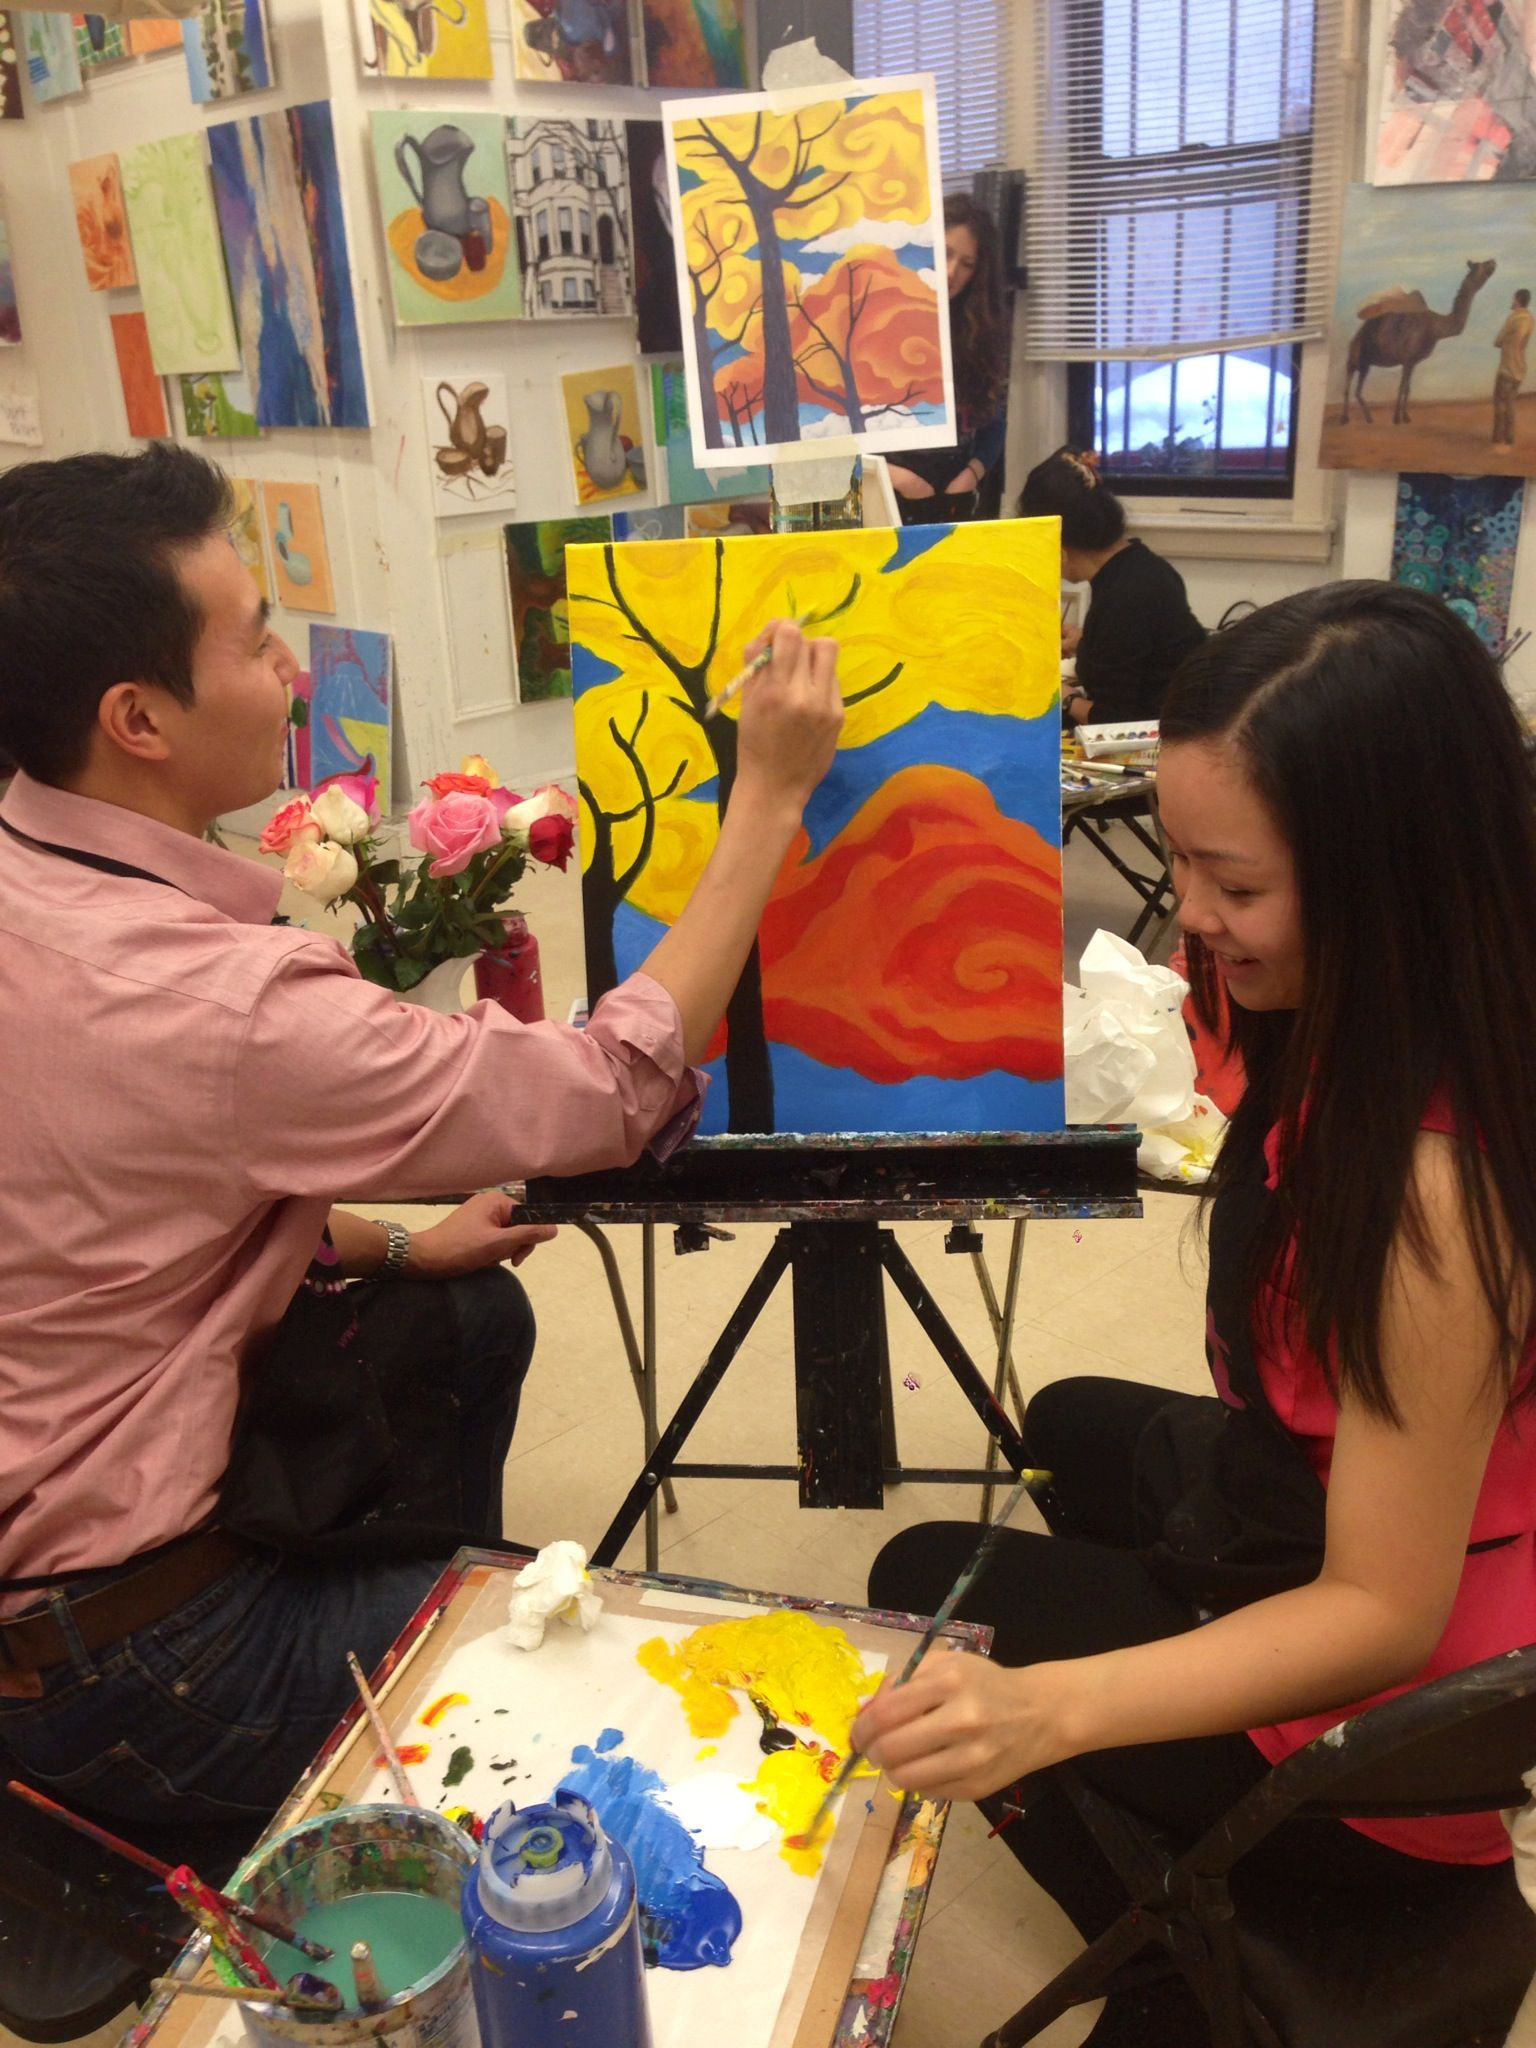 Valentine S Day Art Class Date Night Love Vday Best Art